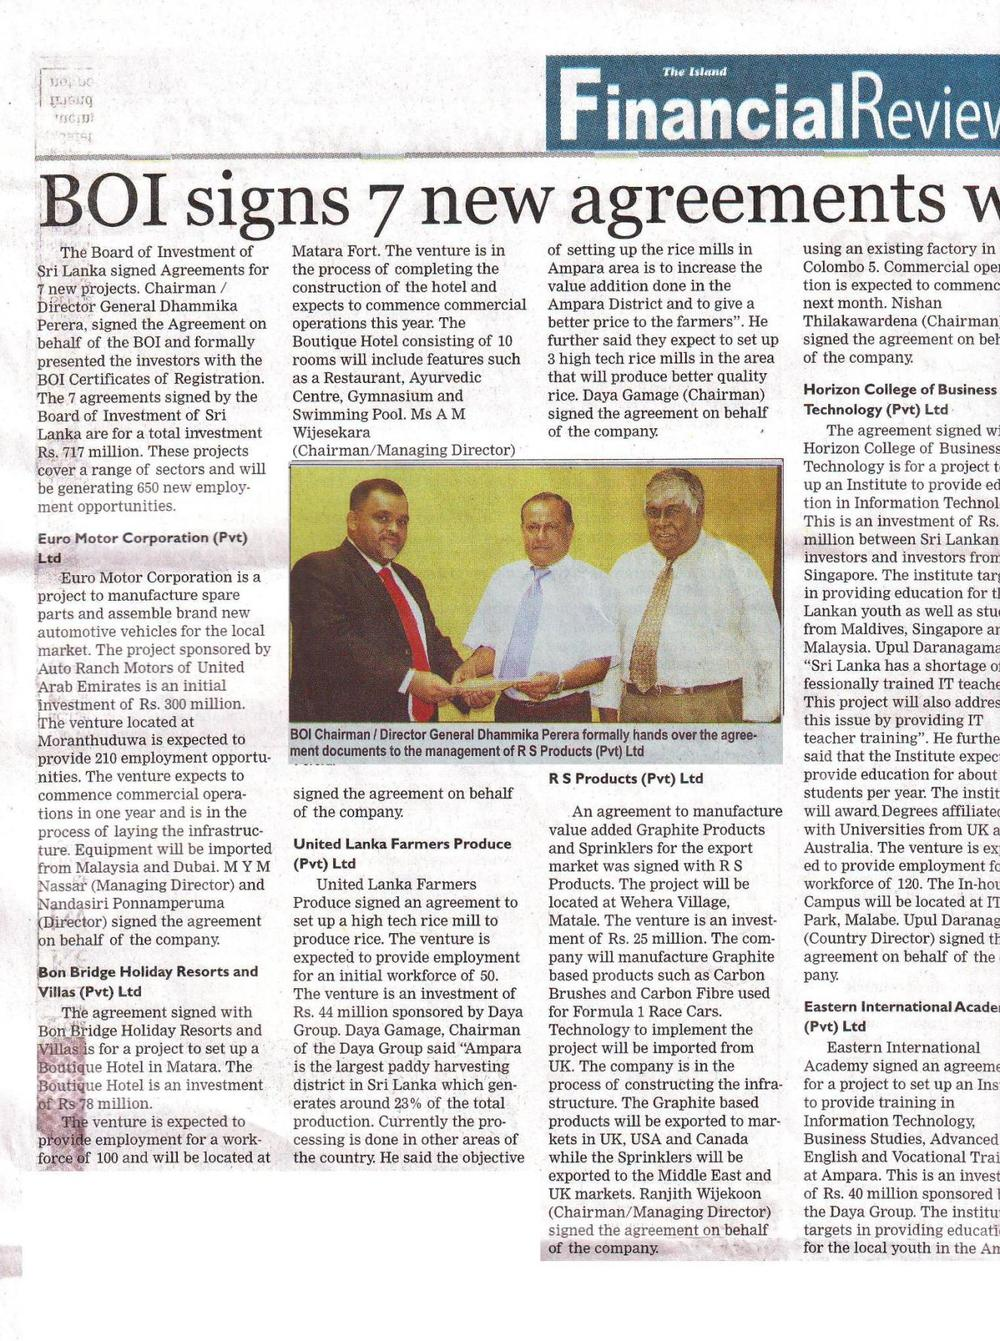 RS Mines and BOI, Sri Lanka Financial Times News article